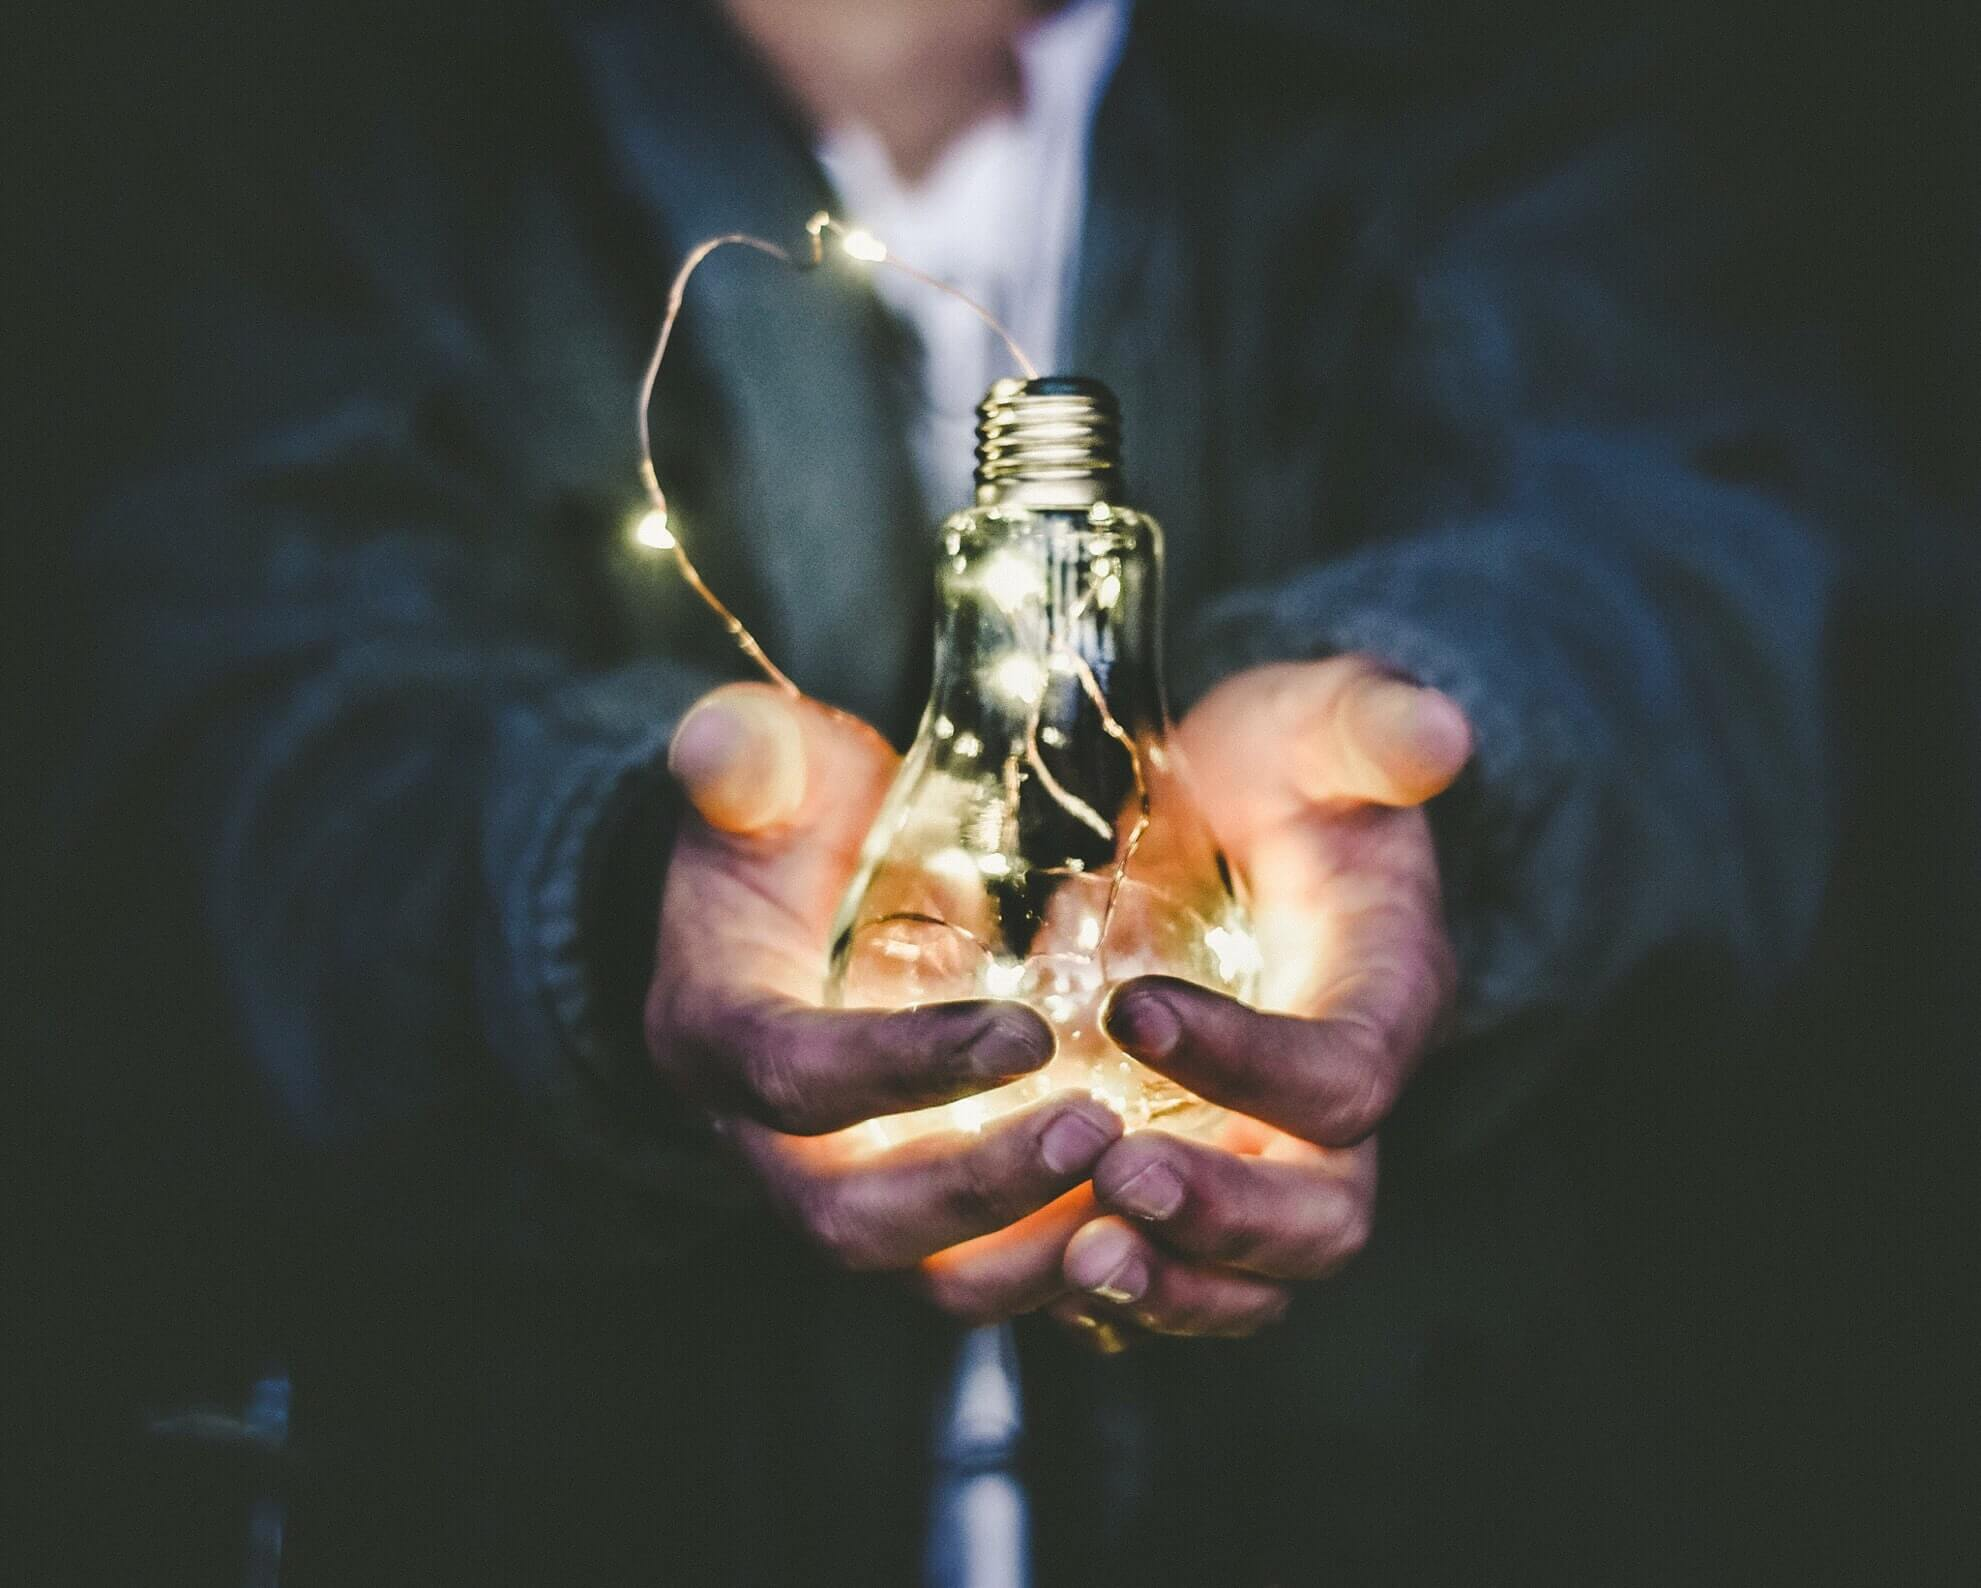 Technical leadership can help turn the idea that is represented by the light bulb into a software application.